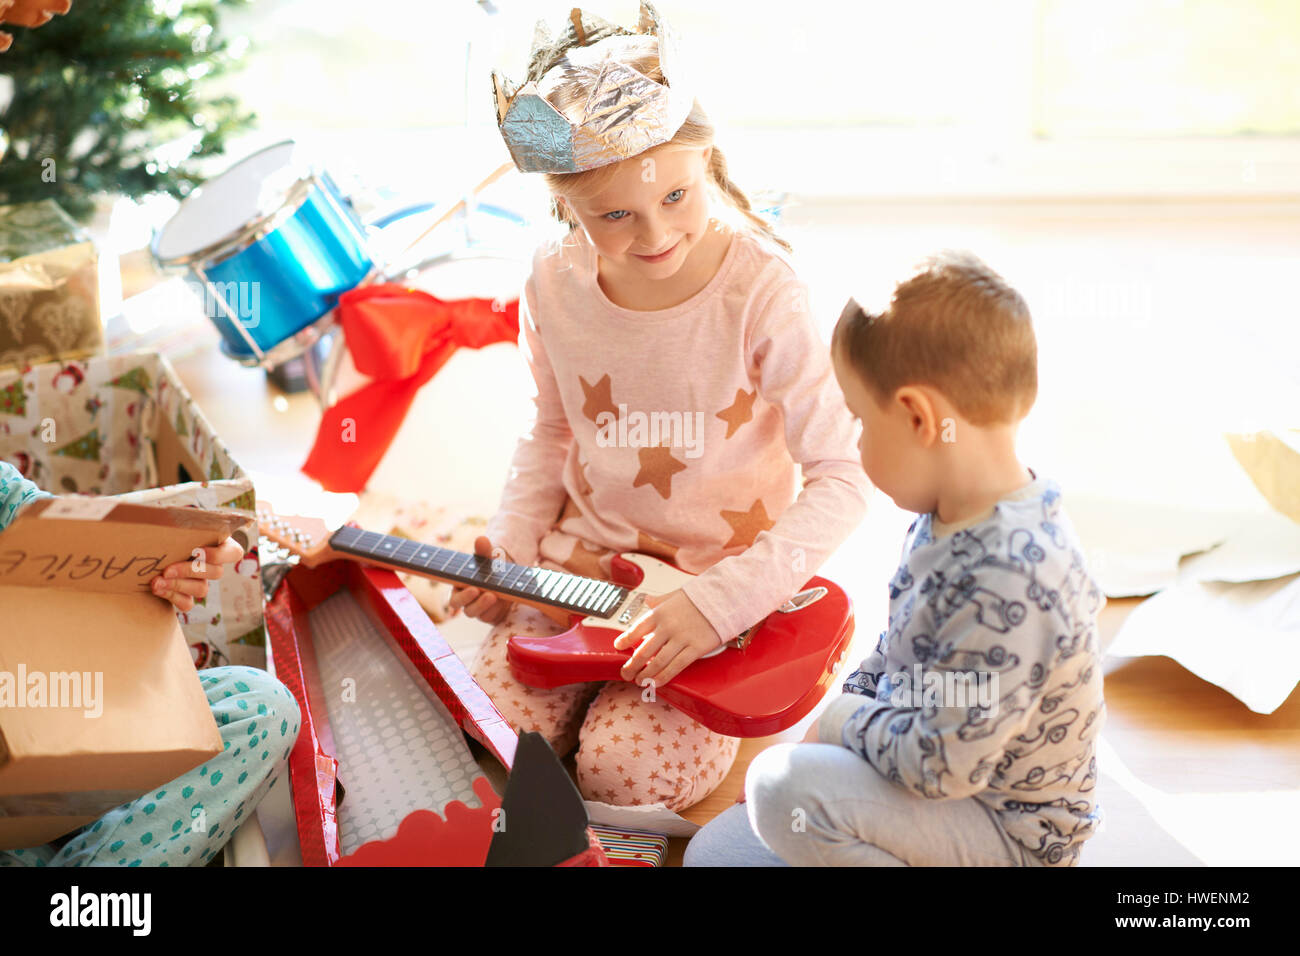 Girl and brother playing with toy guitar on christmas day - Stock Image